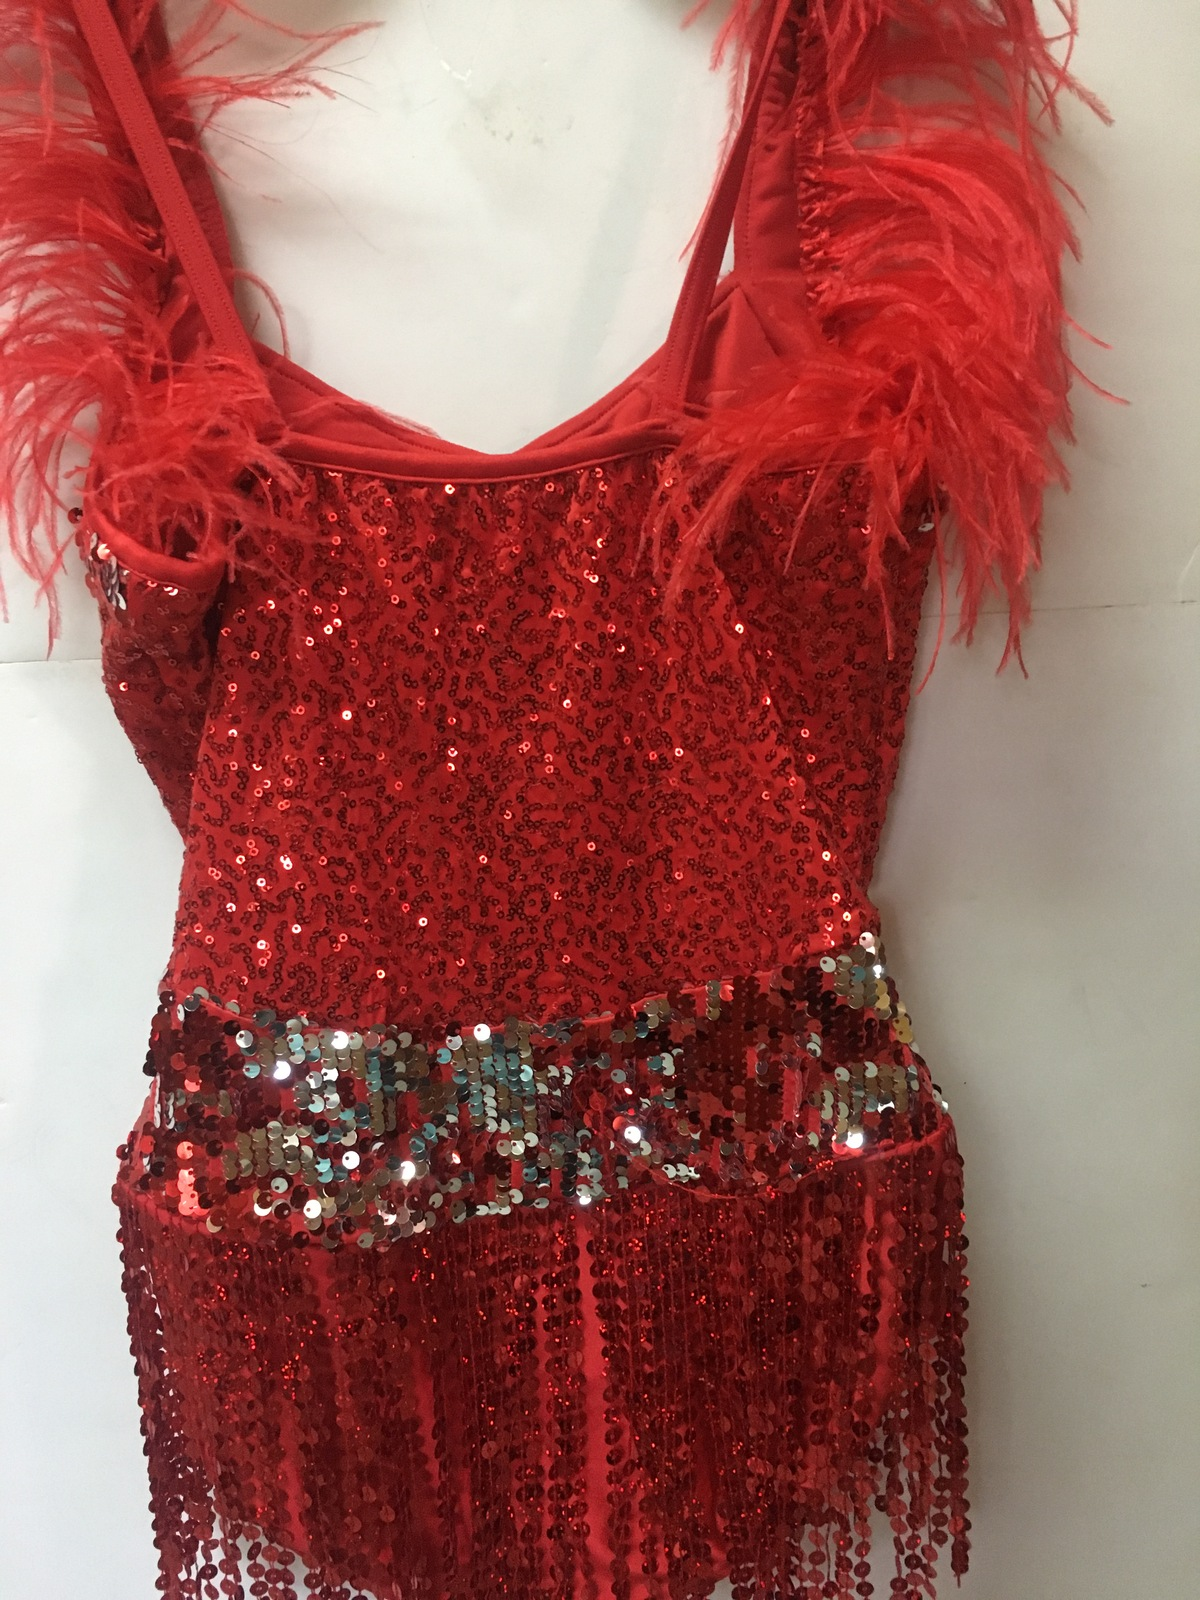 Curtain Call Costume Dancer Sequined Red Women Sz ASM (32-35 Bust)